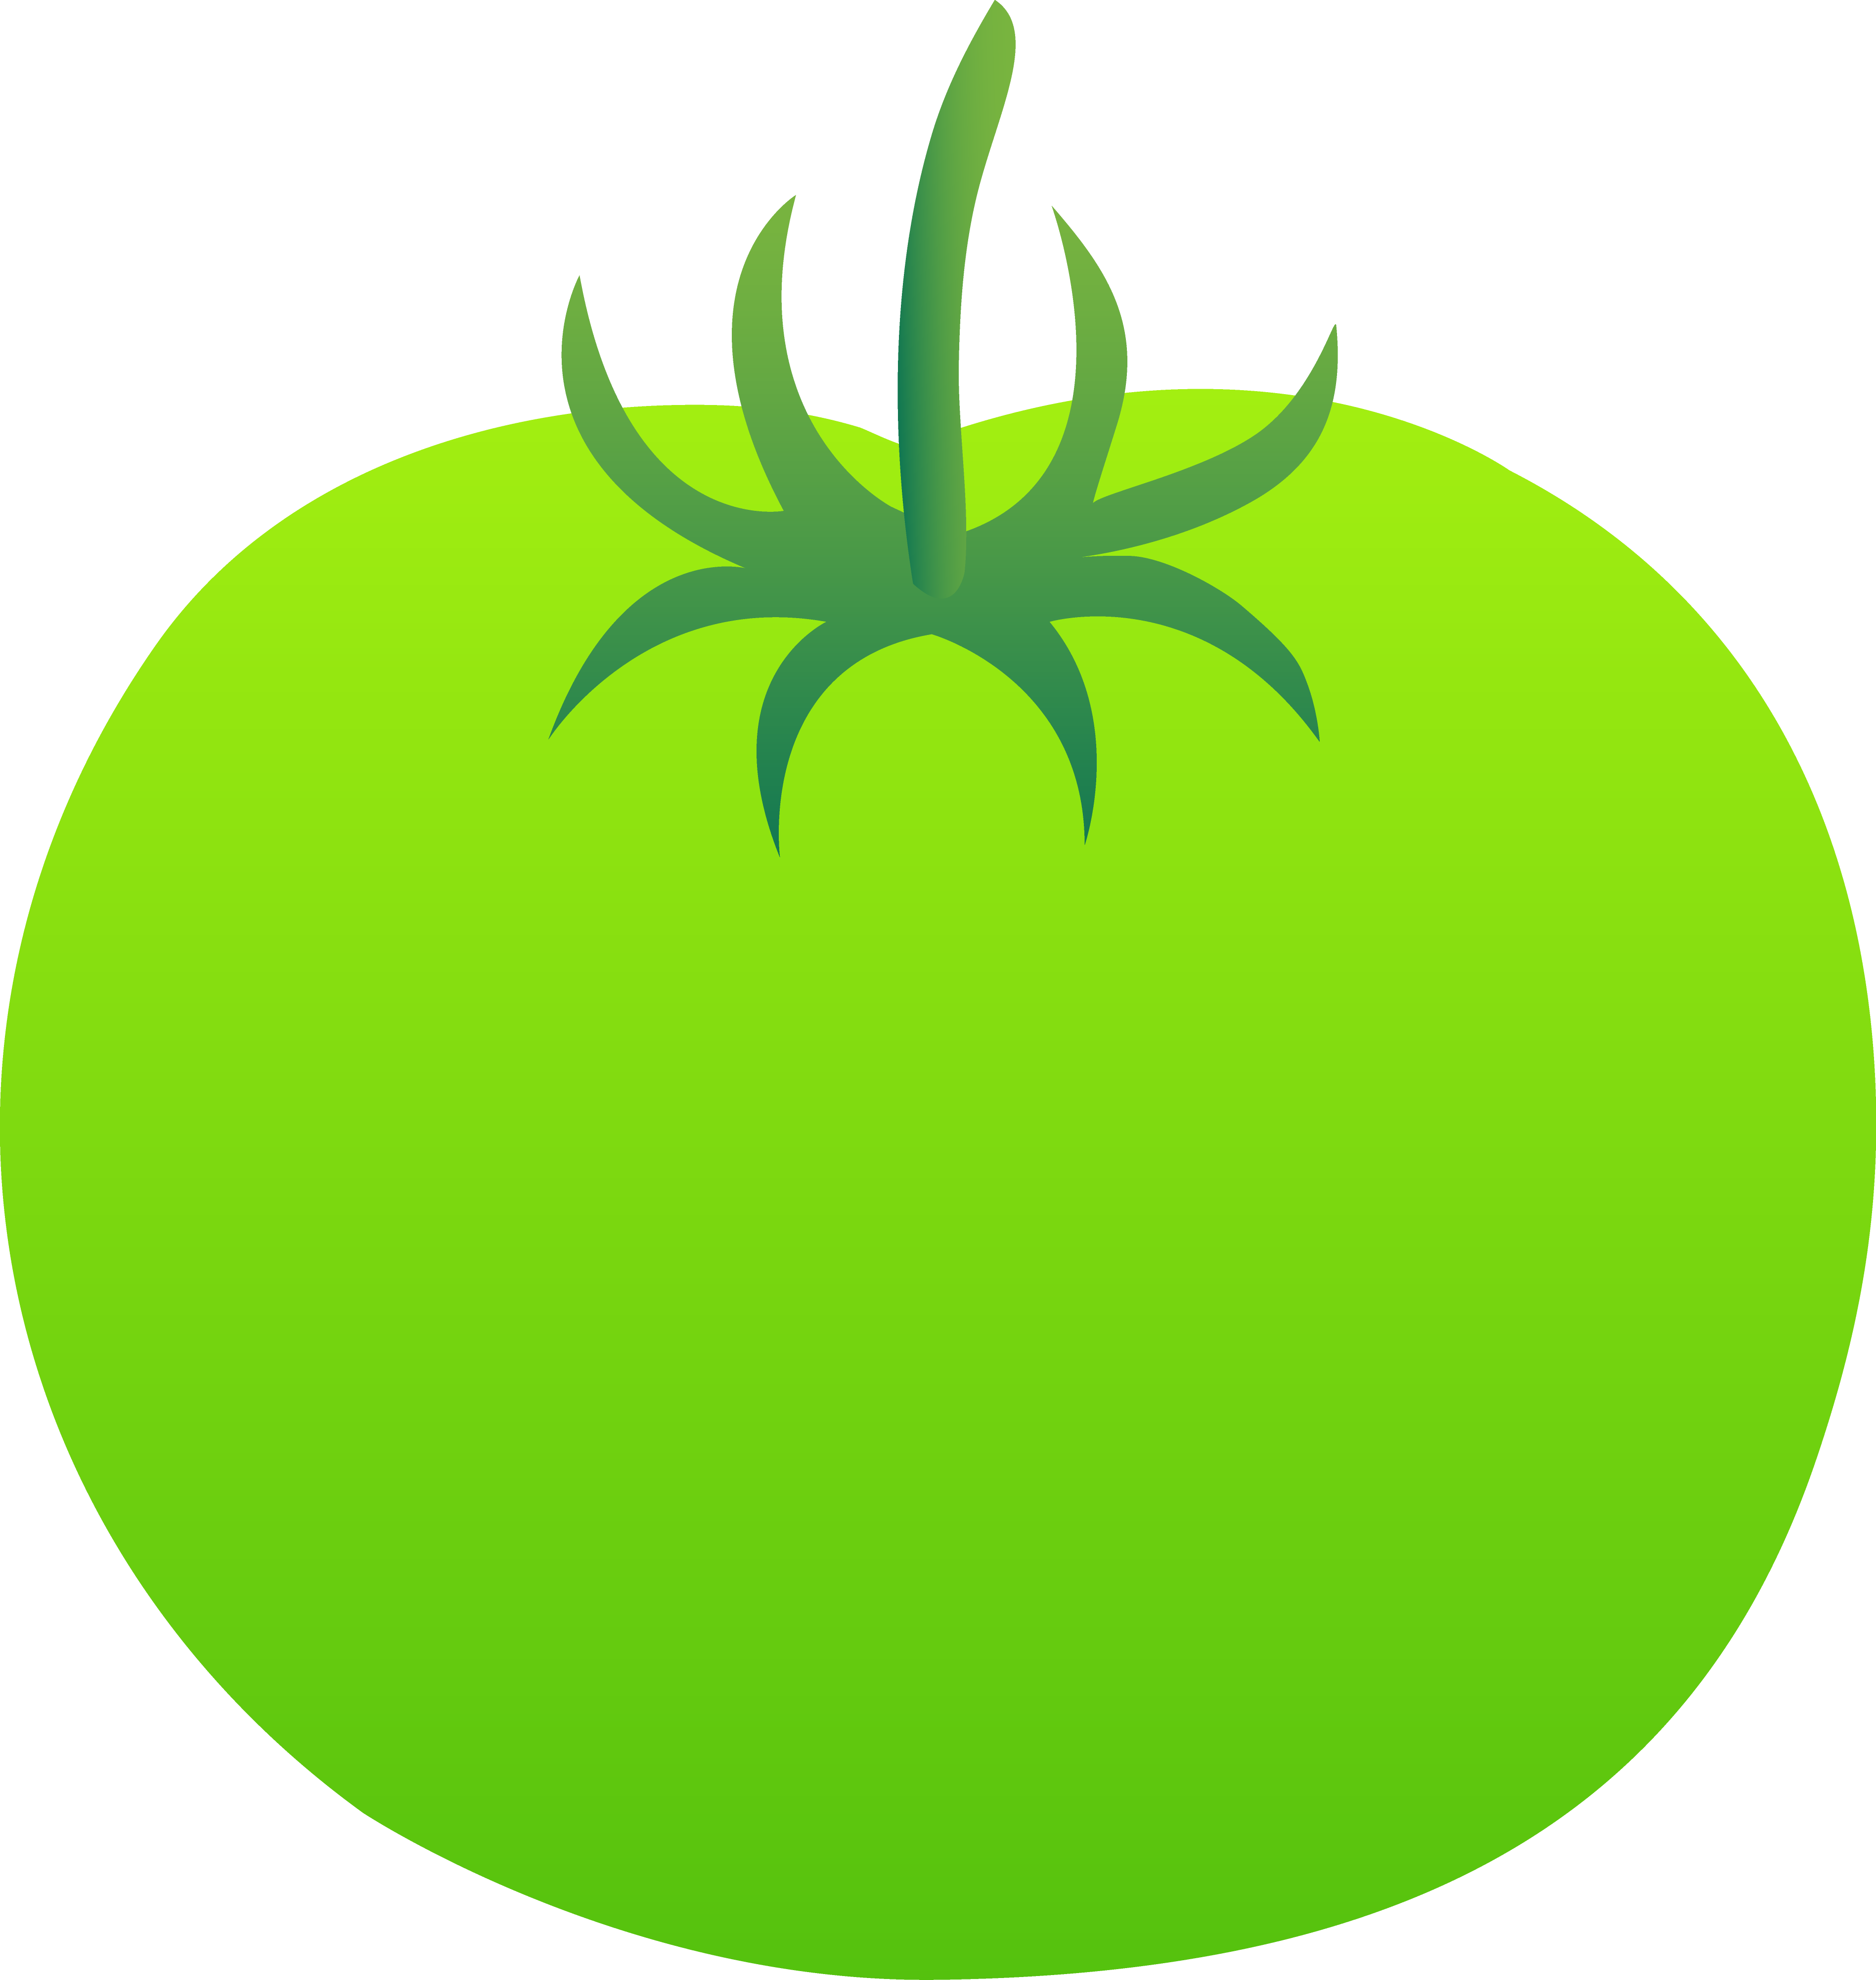 Whole Bright Green Tomato - Free Clip Art